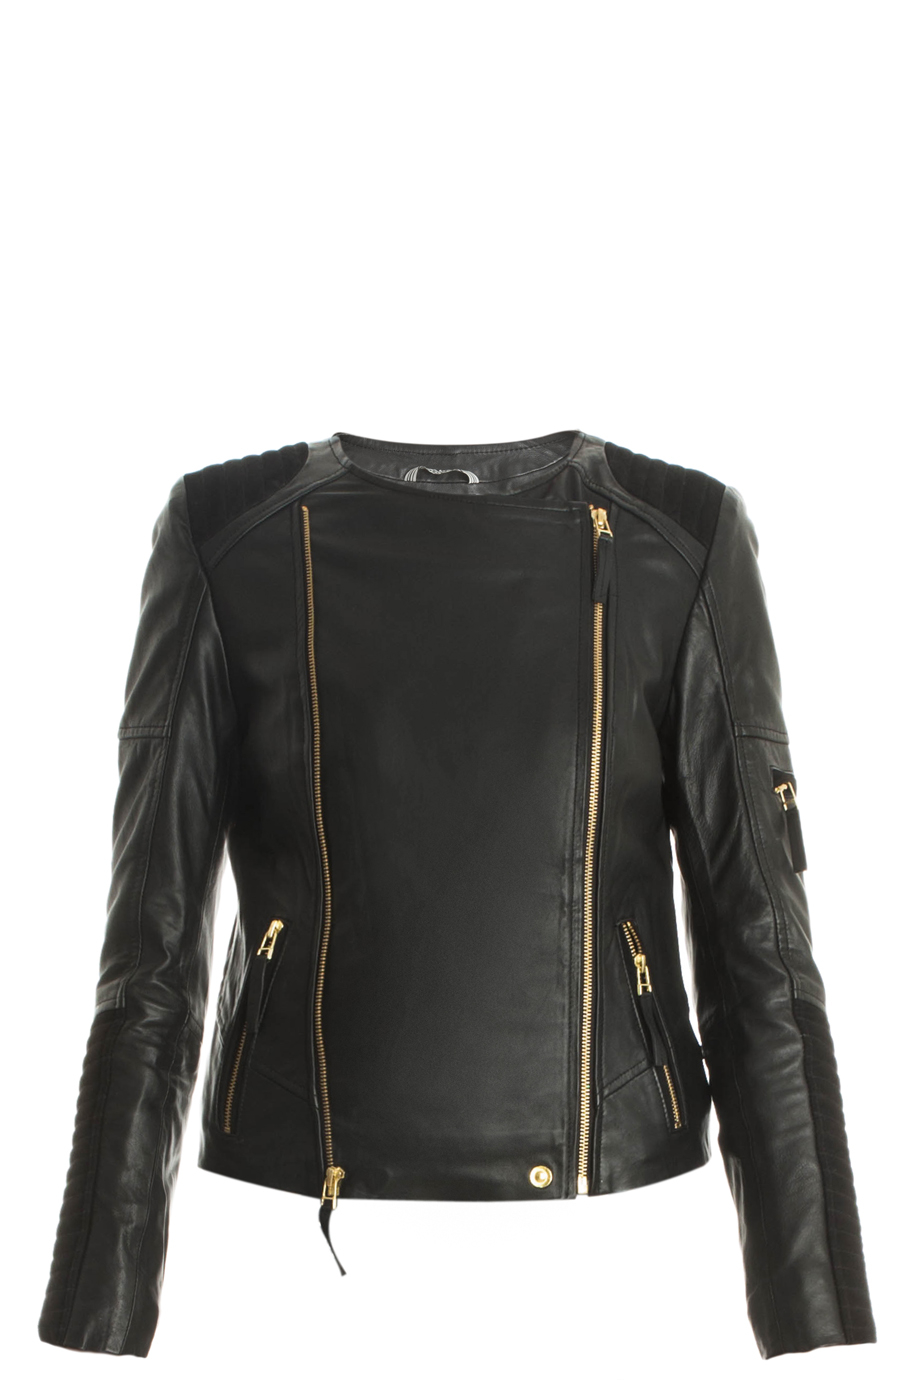 lyst day birger et mikkelsen leather jacket in black. Black Bedroom Furniture Sets. Home Design Ideas